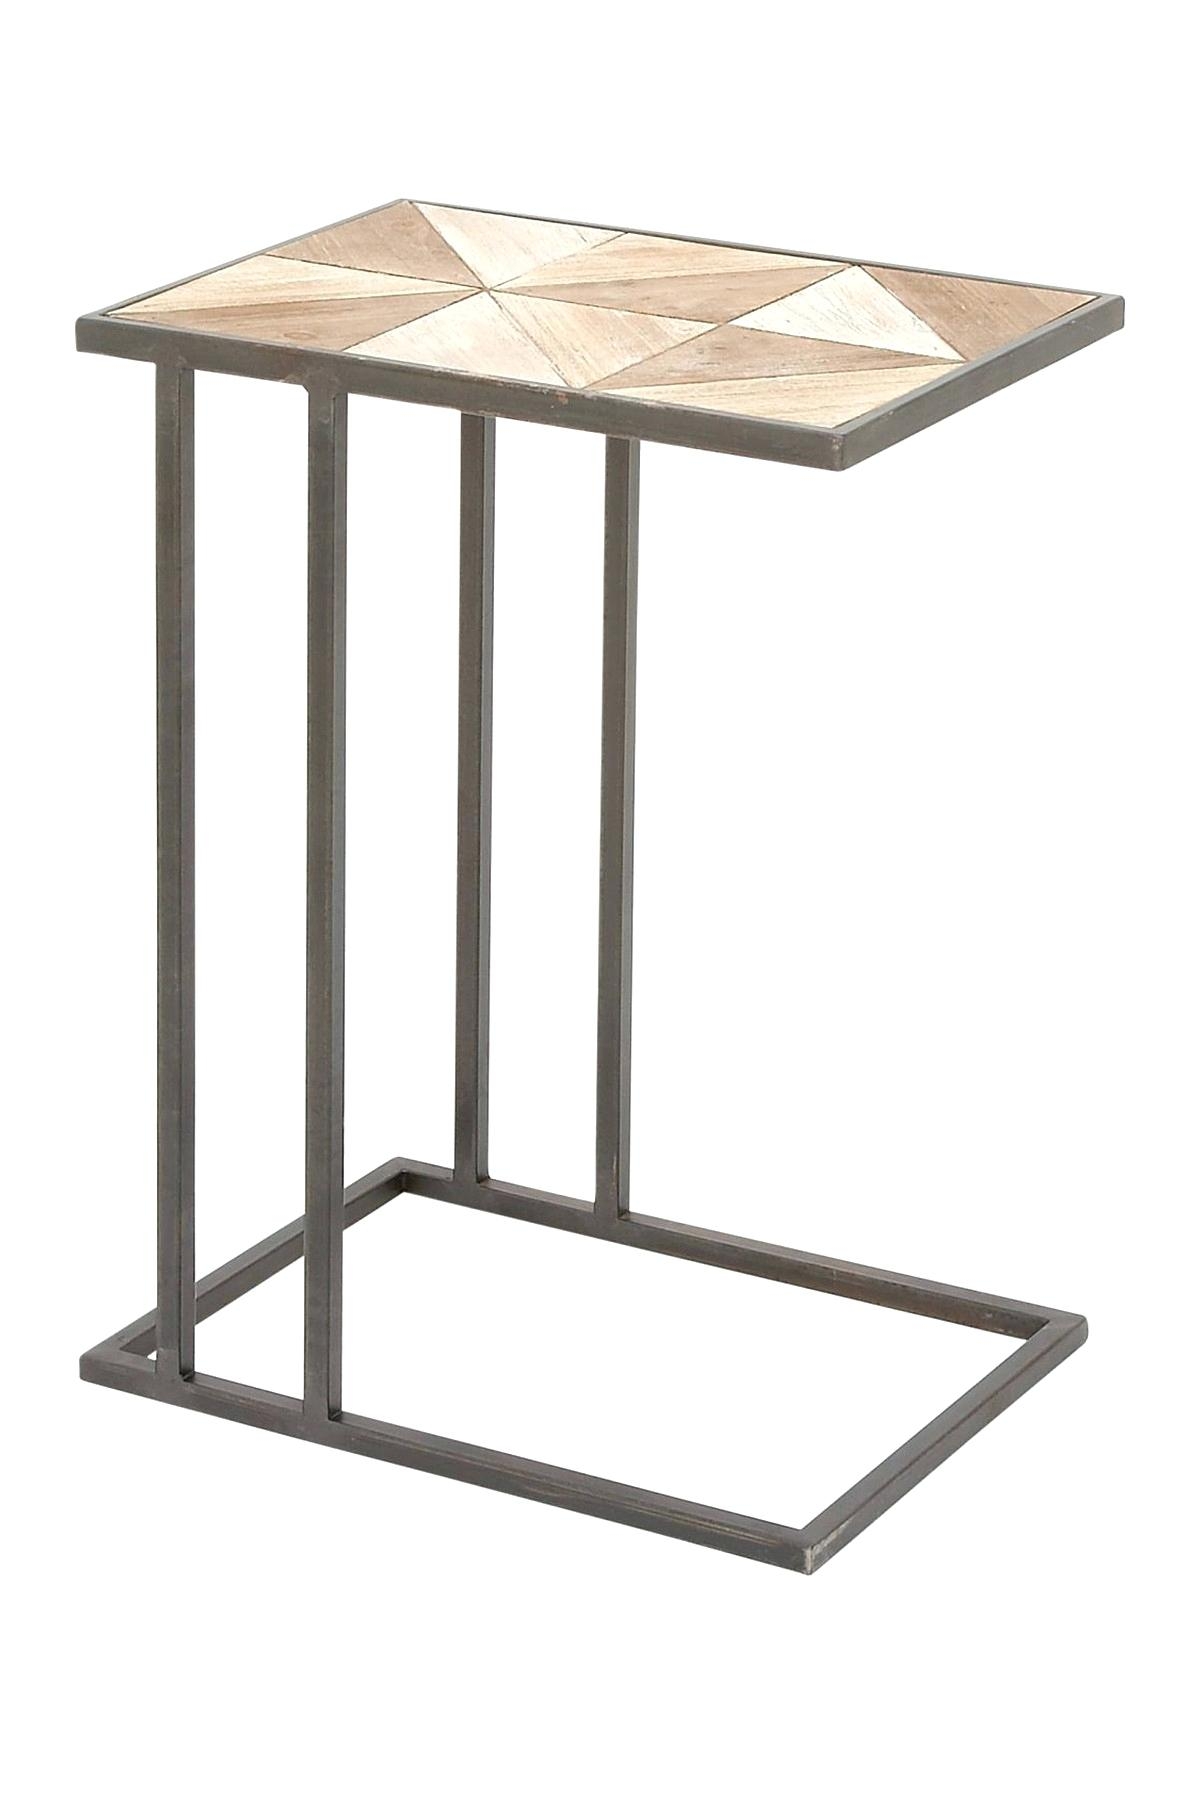 metal and wood accent table brown uma qthai top trestle legs round entry contemporary coffee tables toronto dark farmhouse tiffany lily lamp unique end inch tablecloth modern sofa